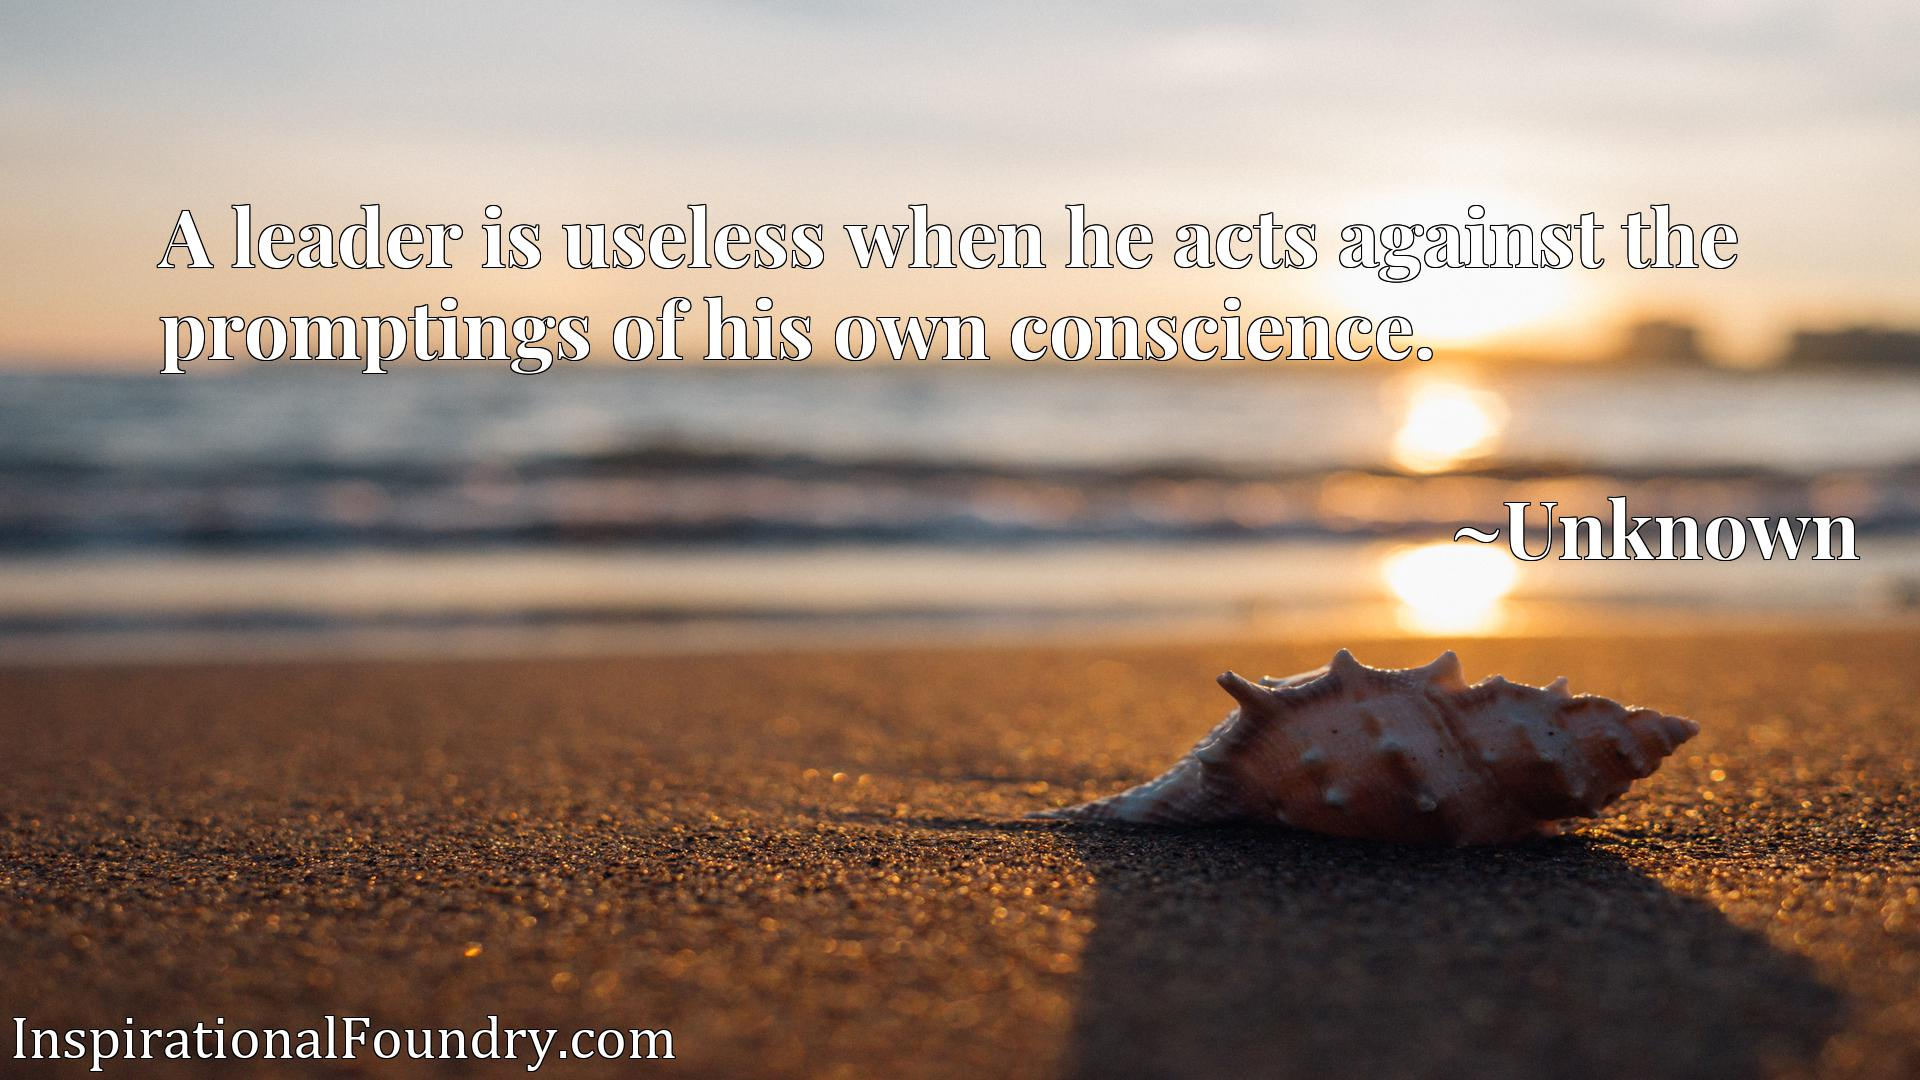 Quote Picture :A leader is useless when he acts against the promptings of his own conscience.